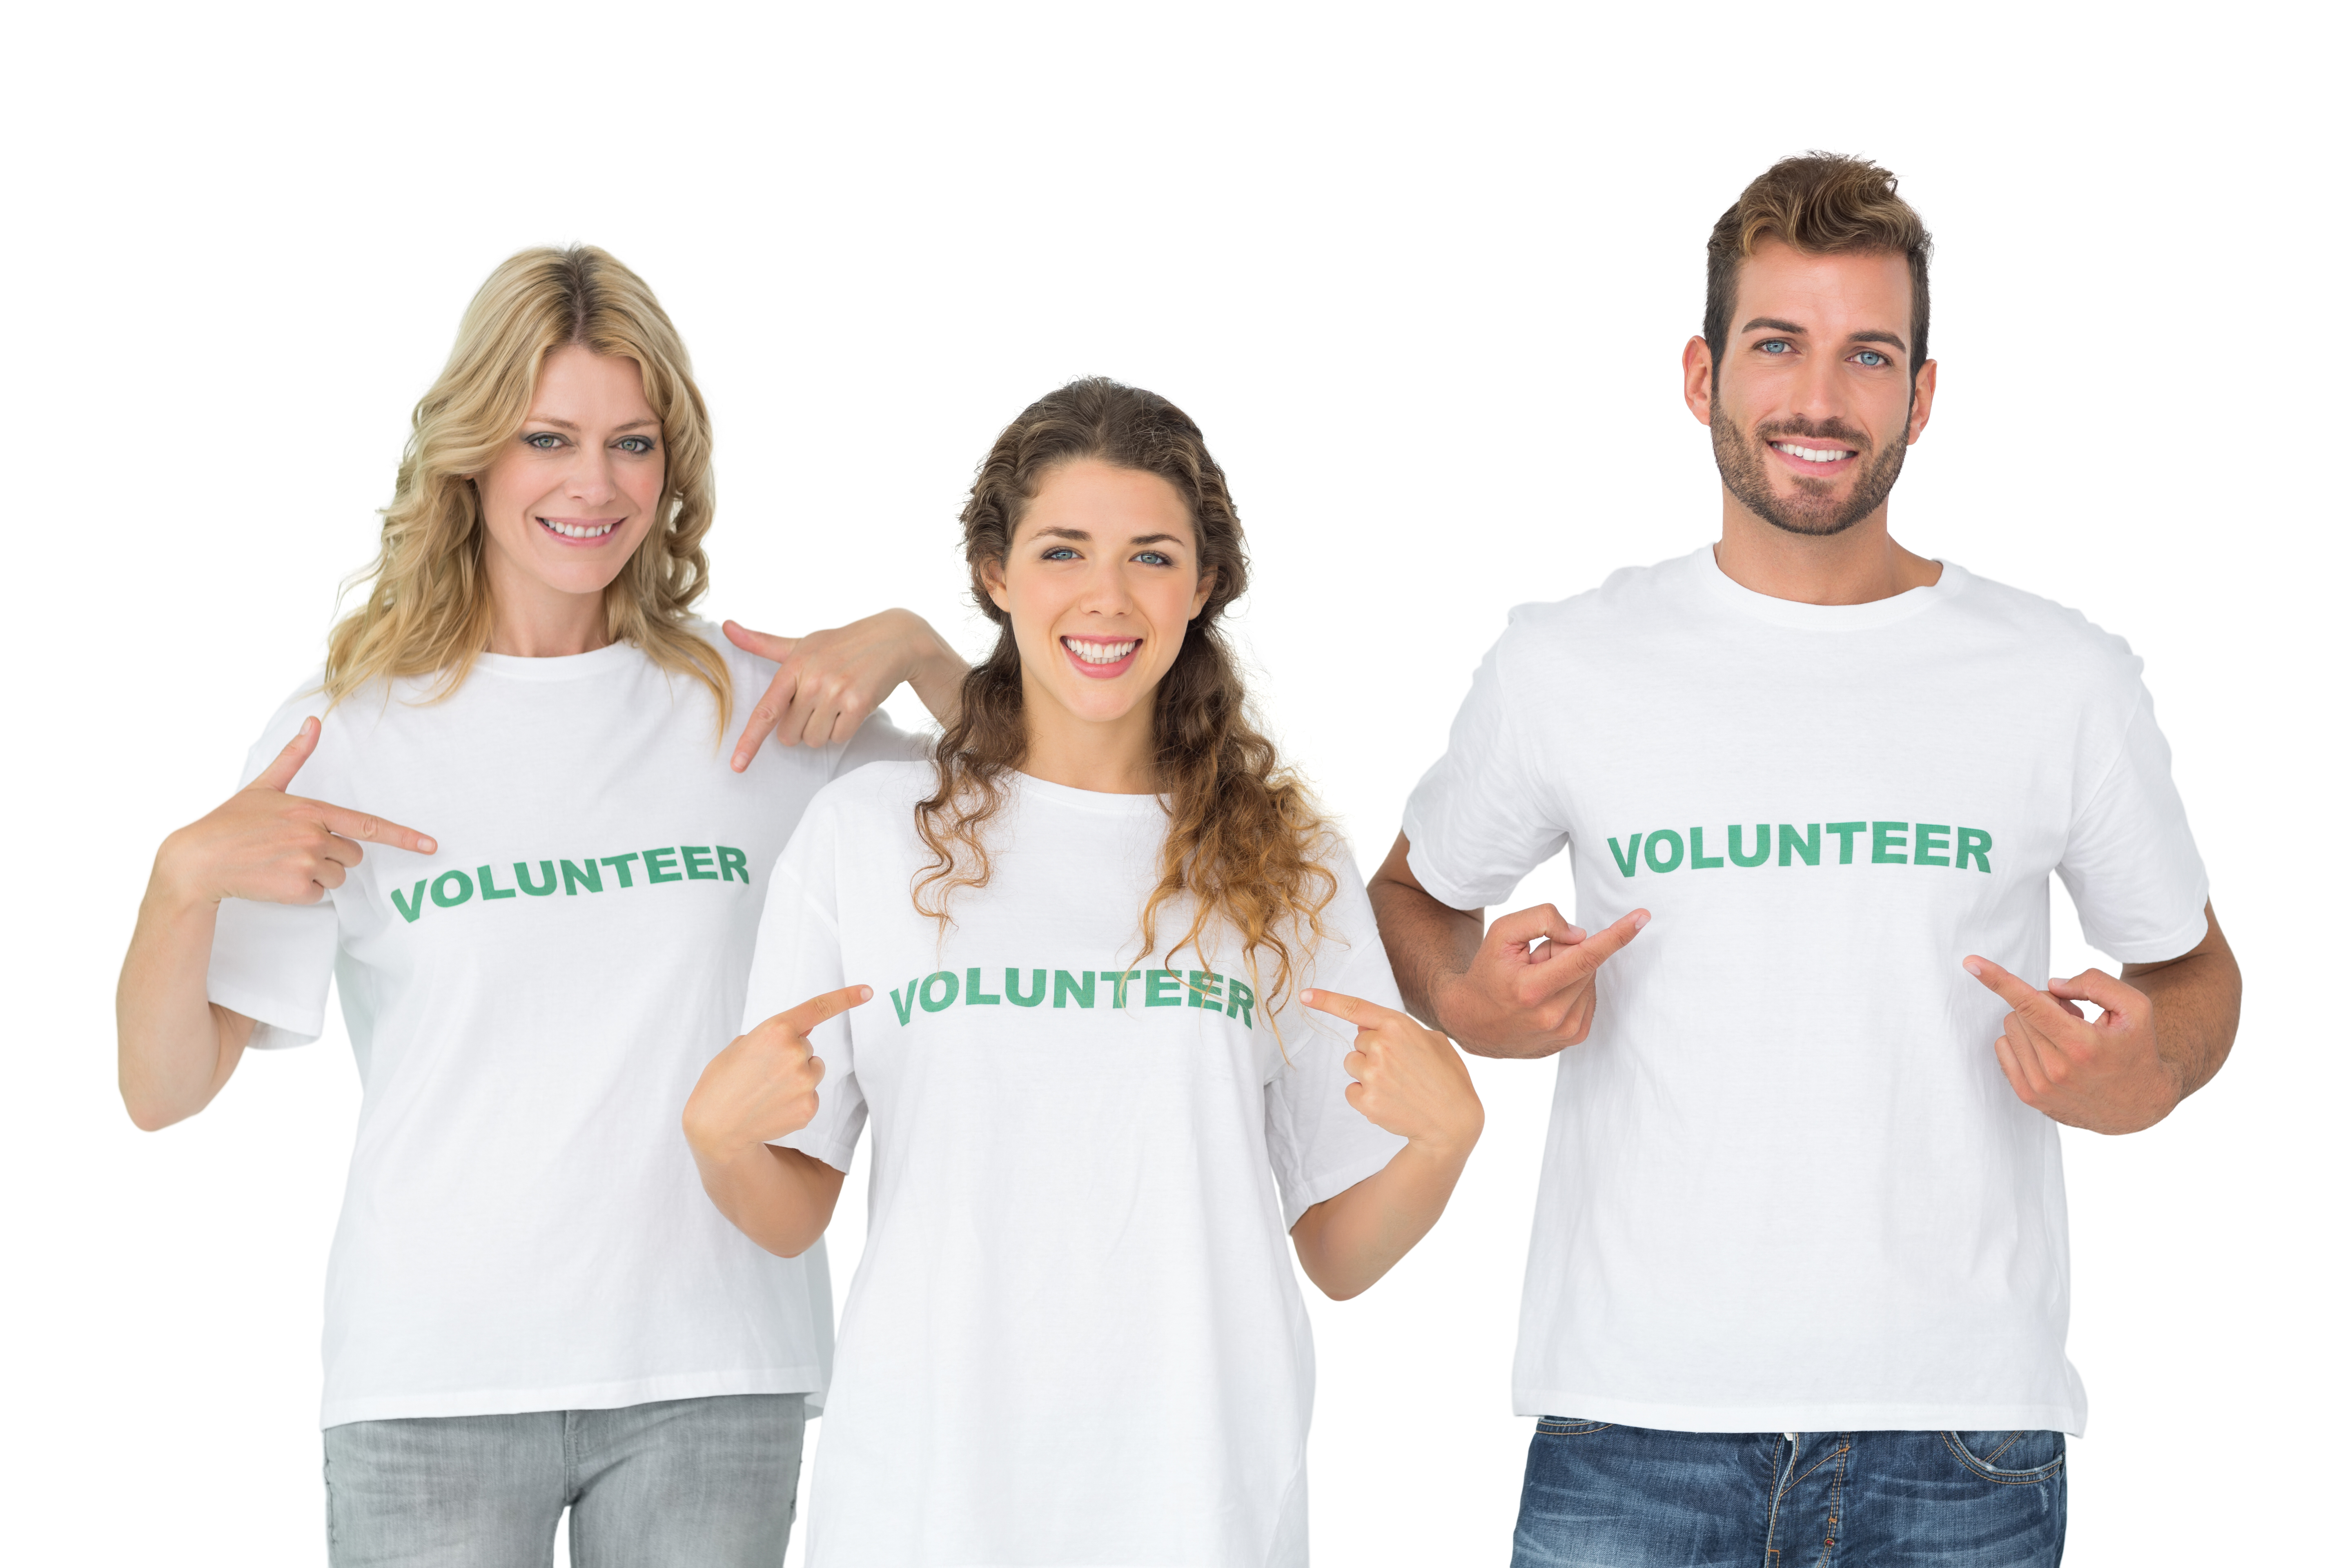 volunteer images - persons